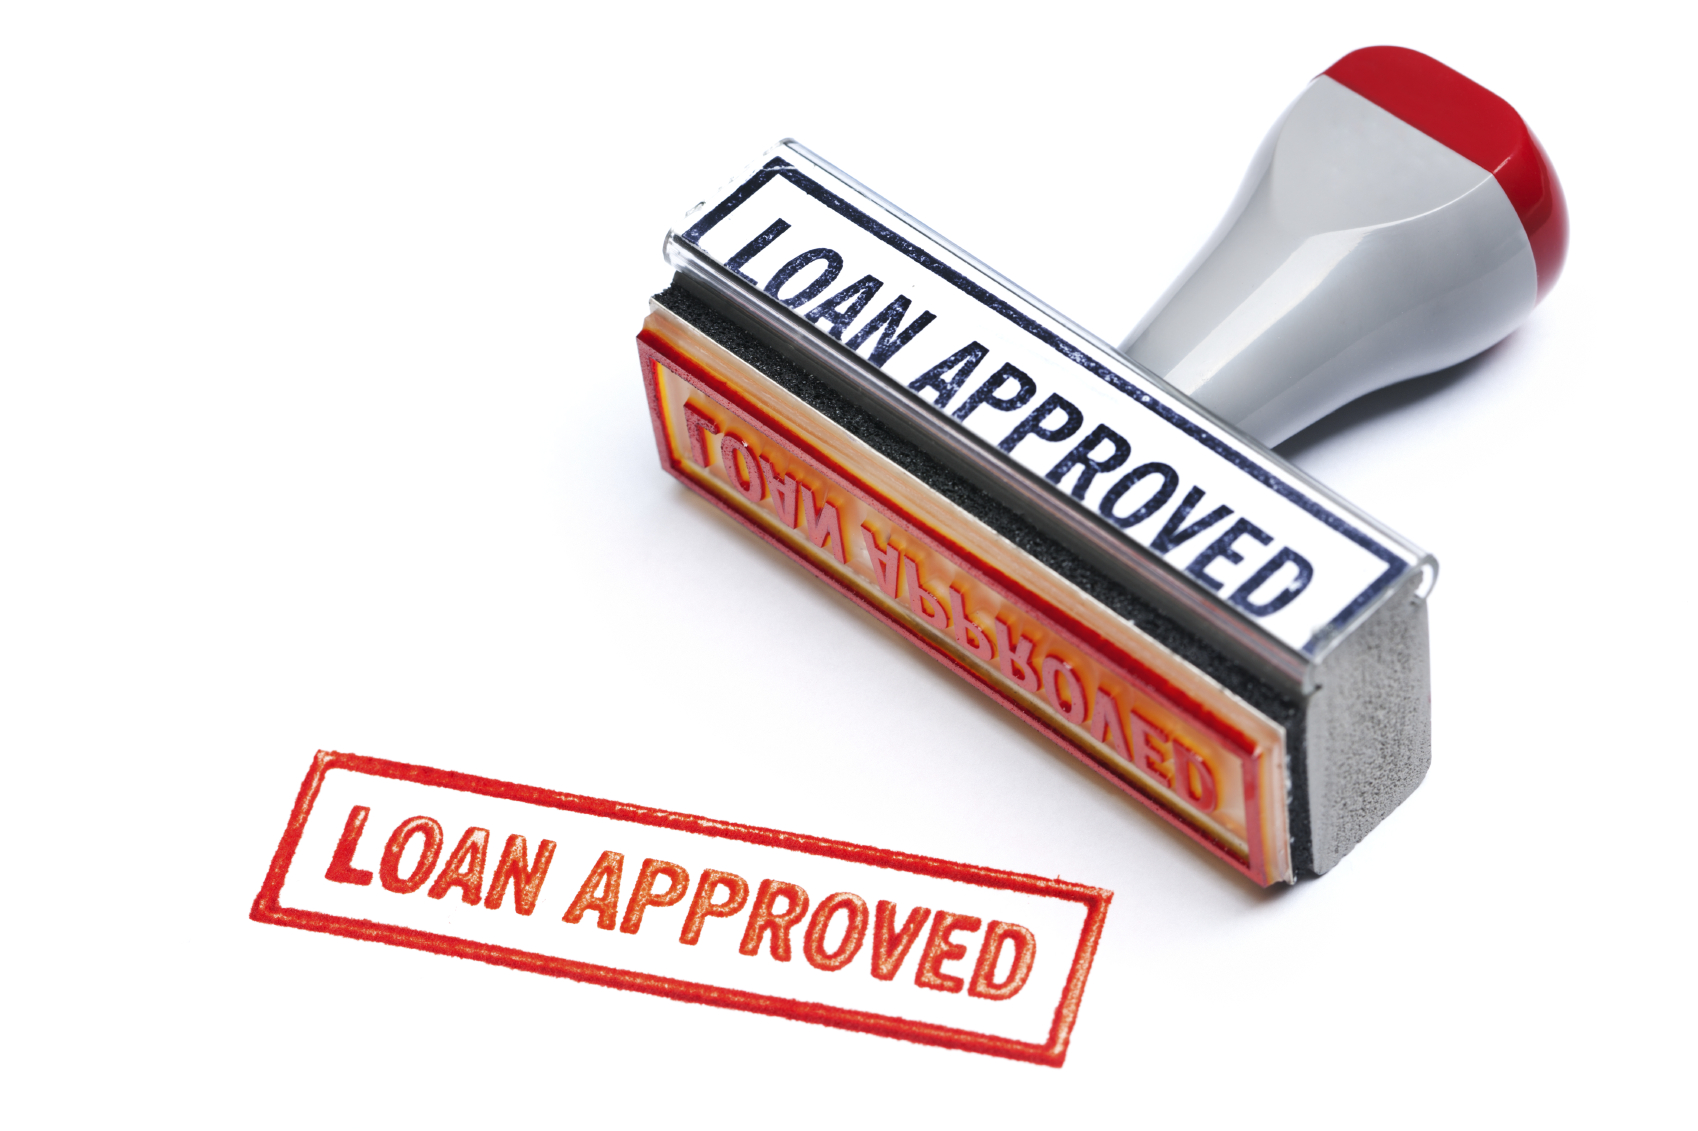 Easy Installment Loan - What It Really Brings to the Table